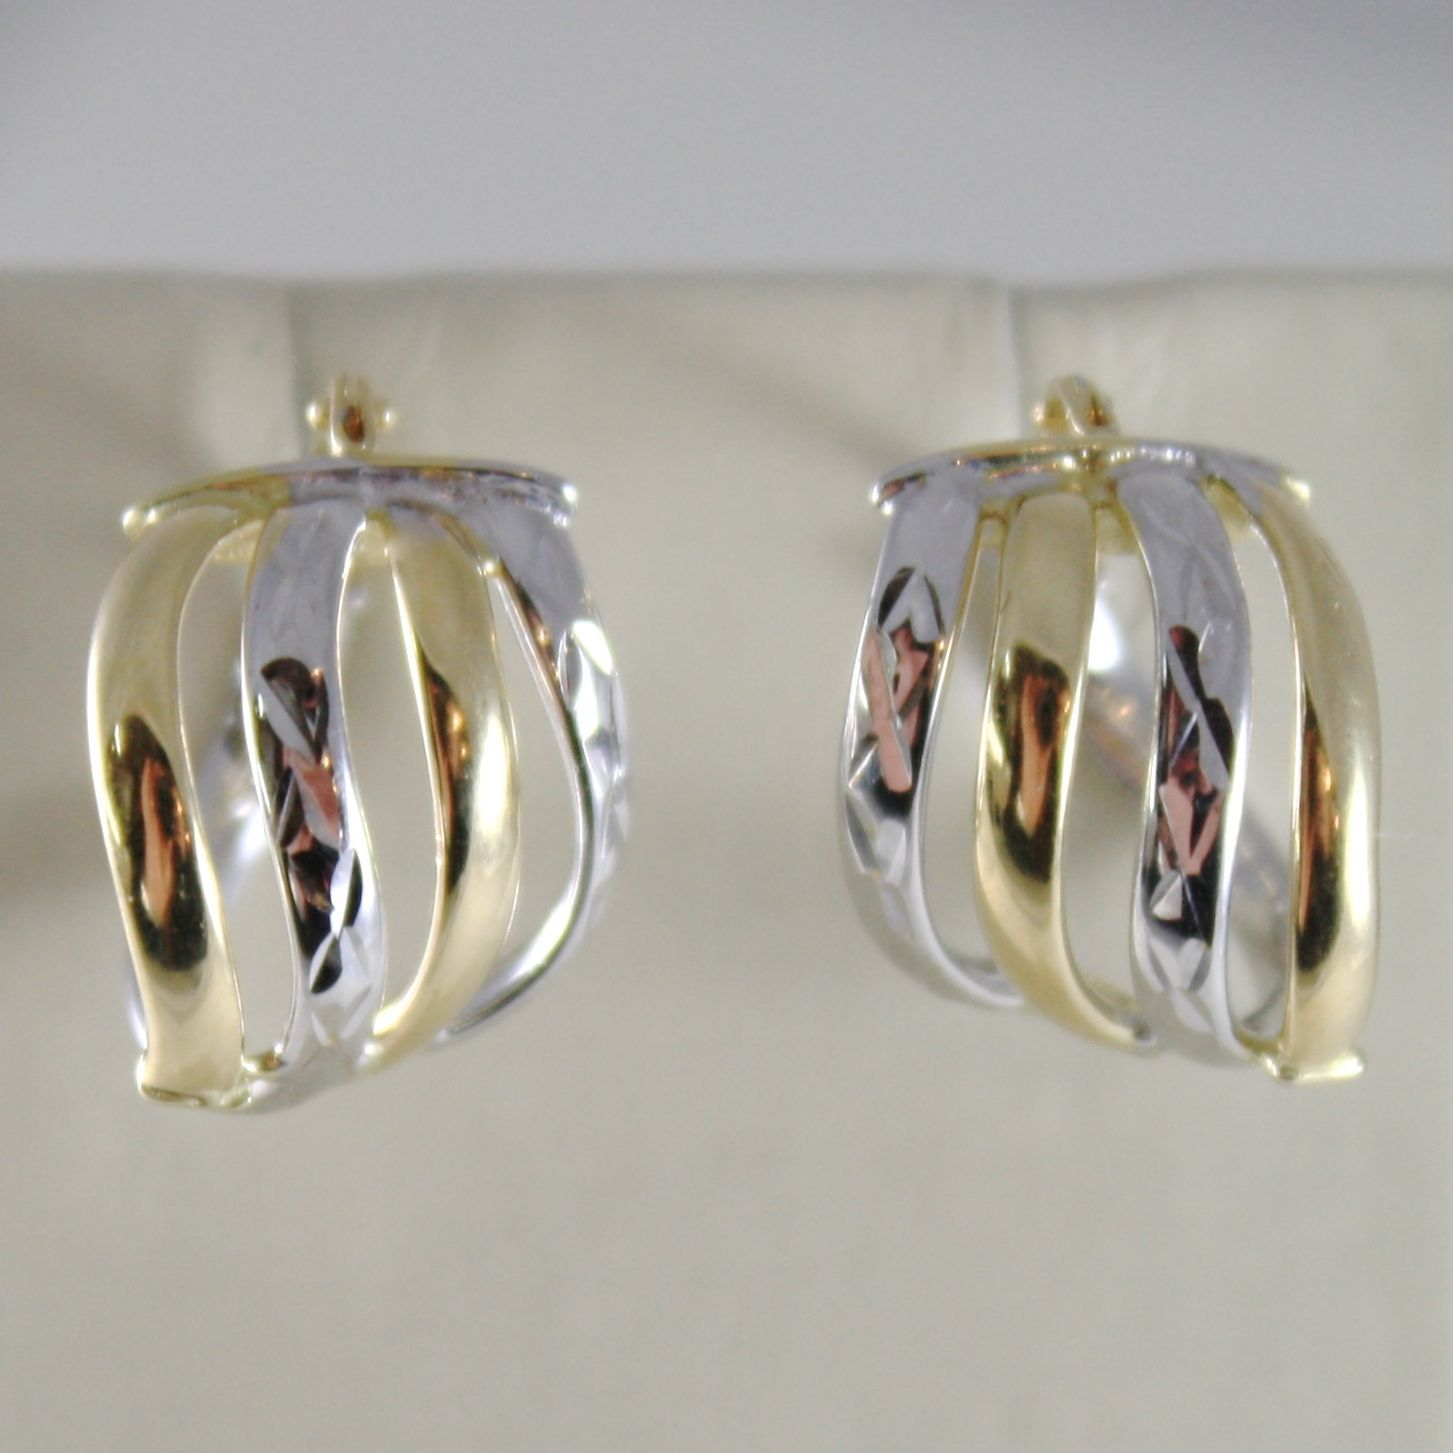 BOUCLES D'OREILLES OR BLANC JAUNE 750 18K CERCLE, VAGUE ALTERNÉ, USINÉ, ITALIE